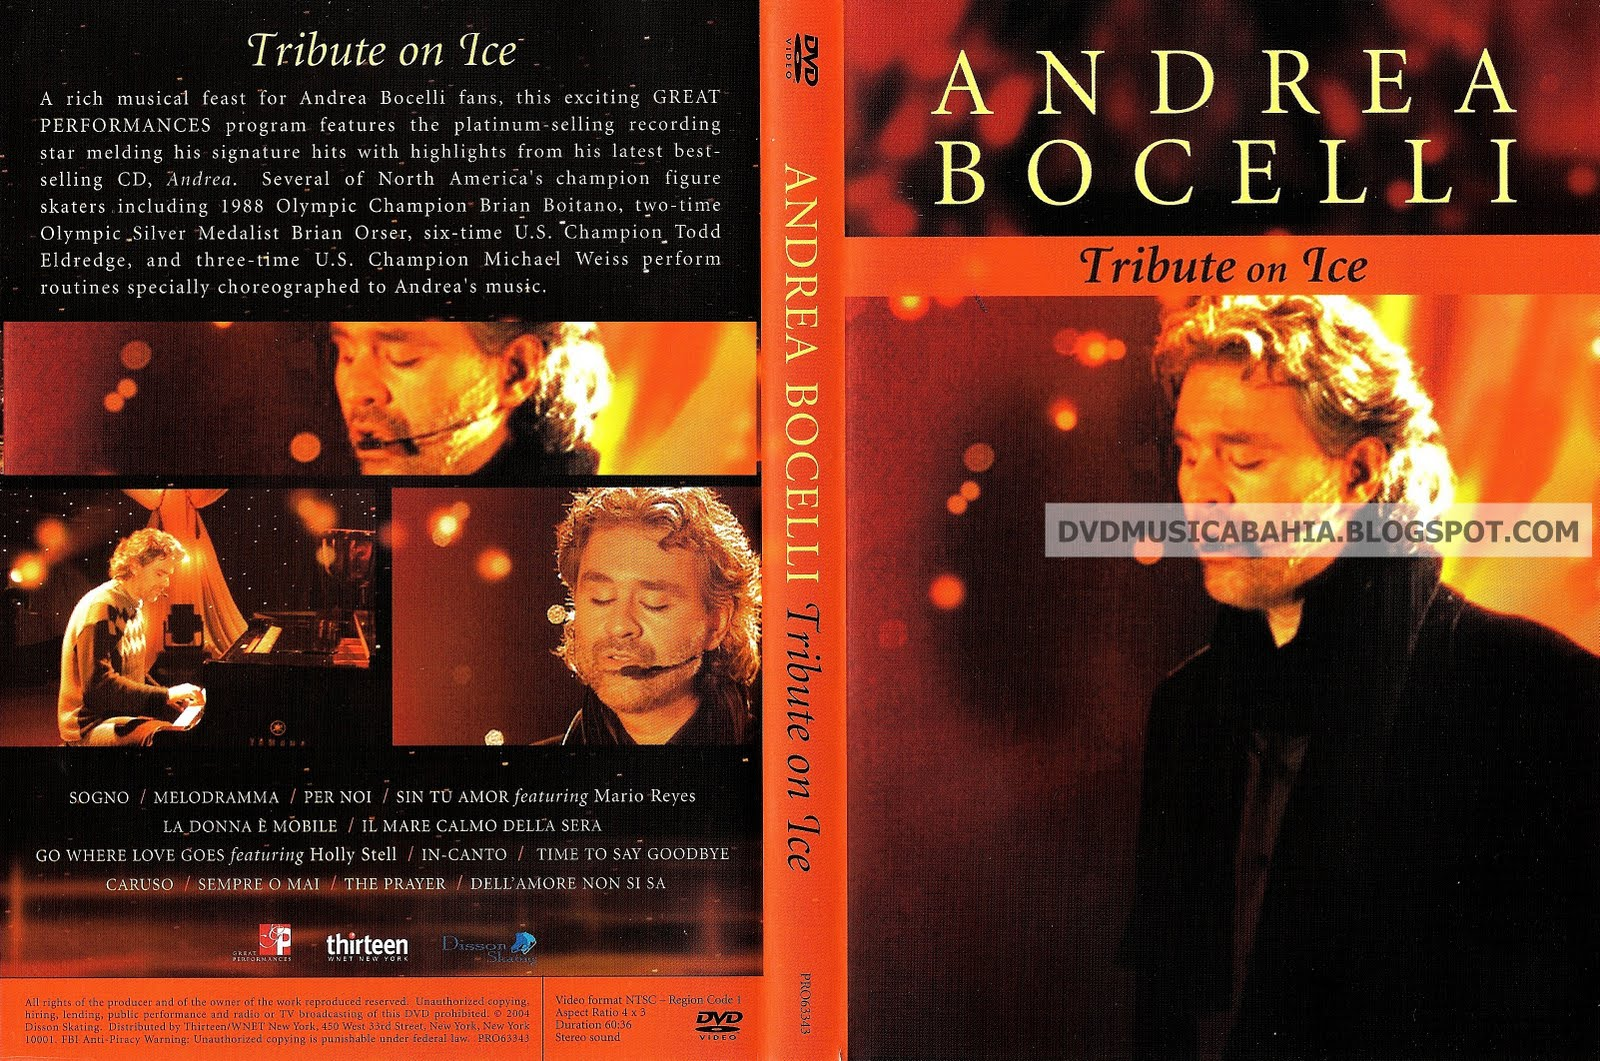 Andrea bocelli tribute on ice dvd